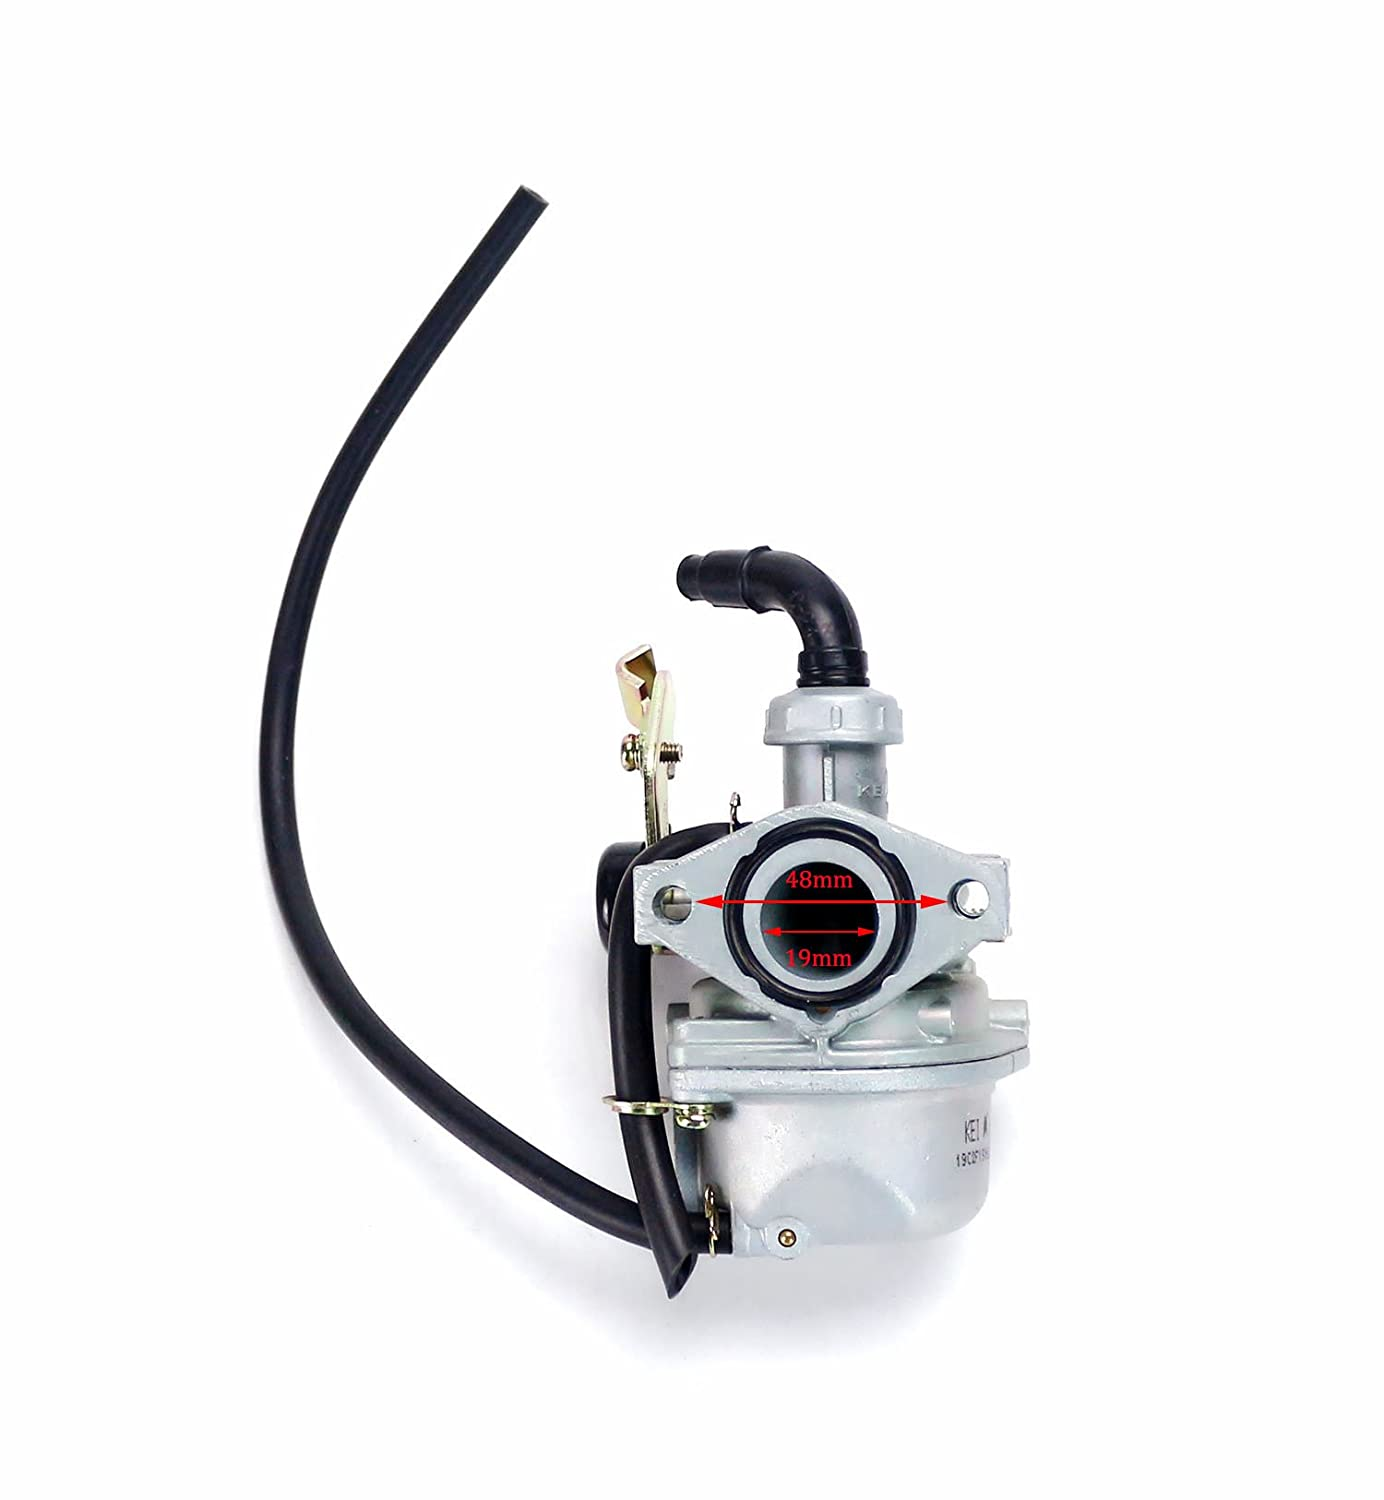 Motorcycle Cable Choke PZ19 19MM Carb Carburetor For 70cc 90cc 110cc Dirt bike (KEIHIN, PZ 19) SUCAN KNC-170407-01